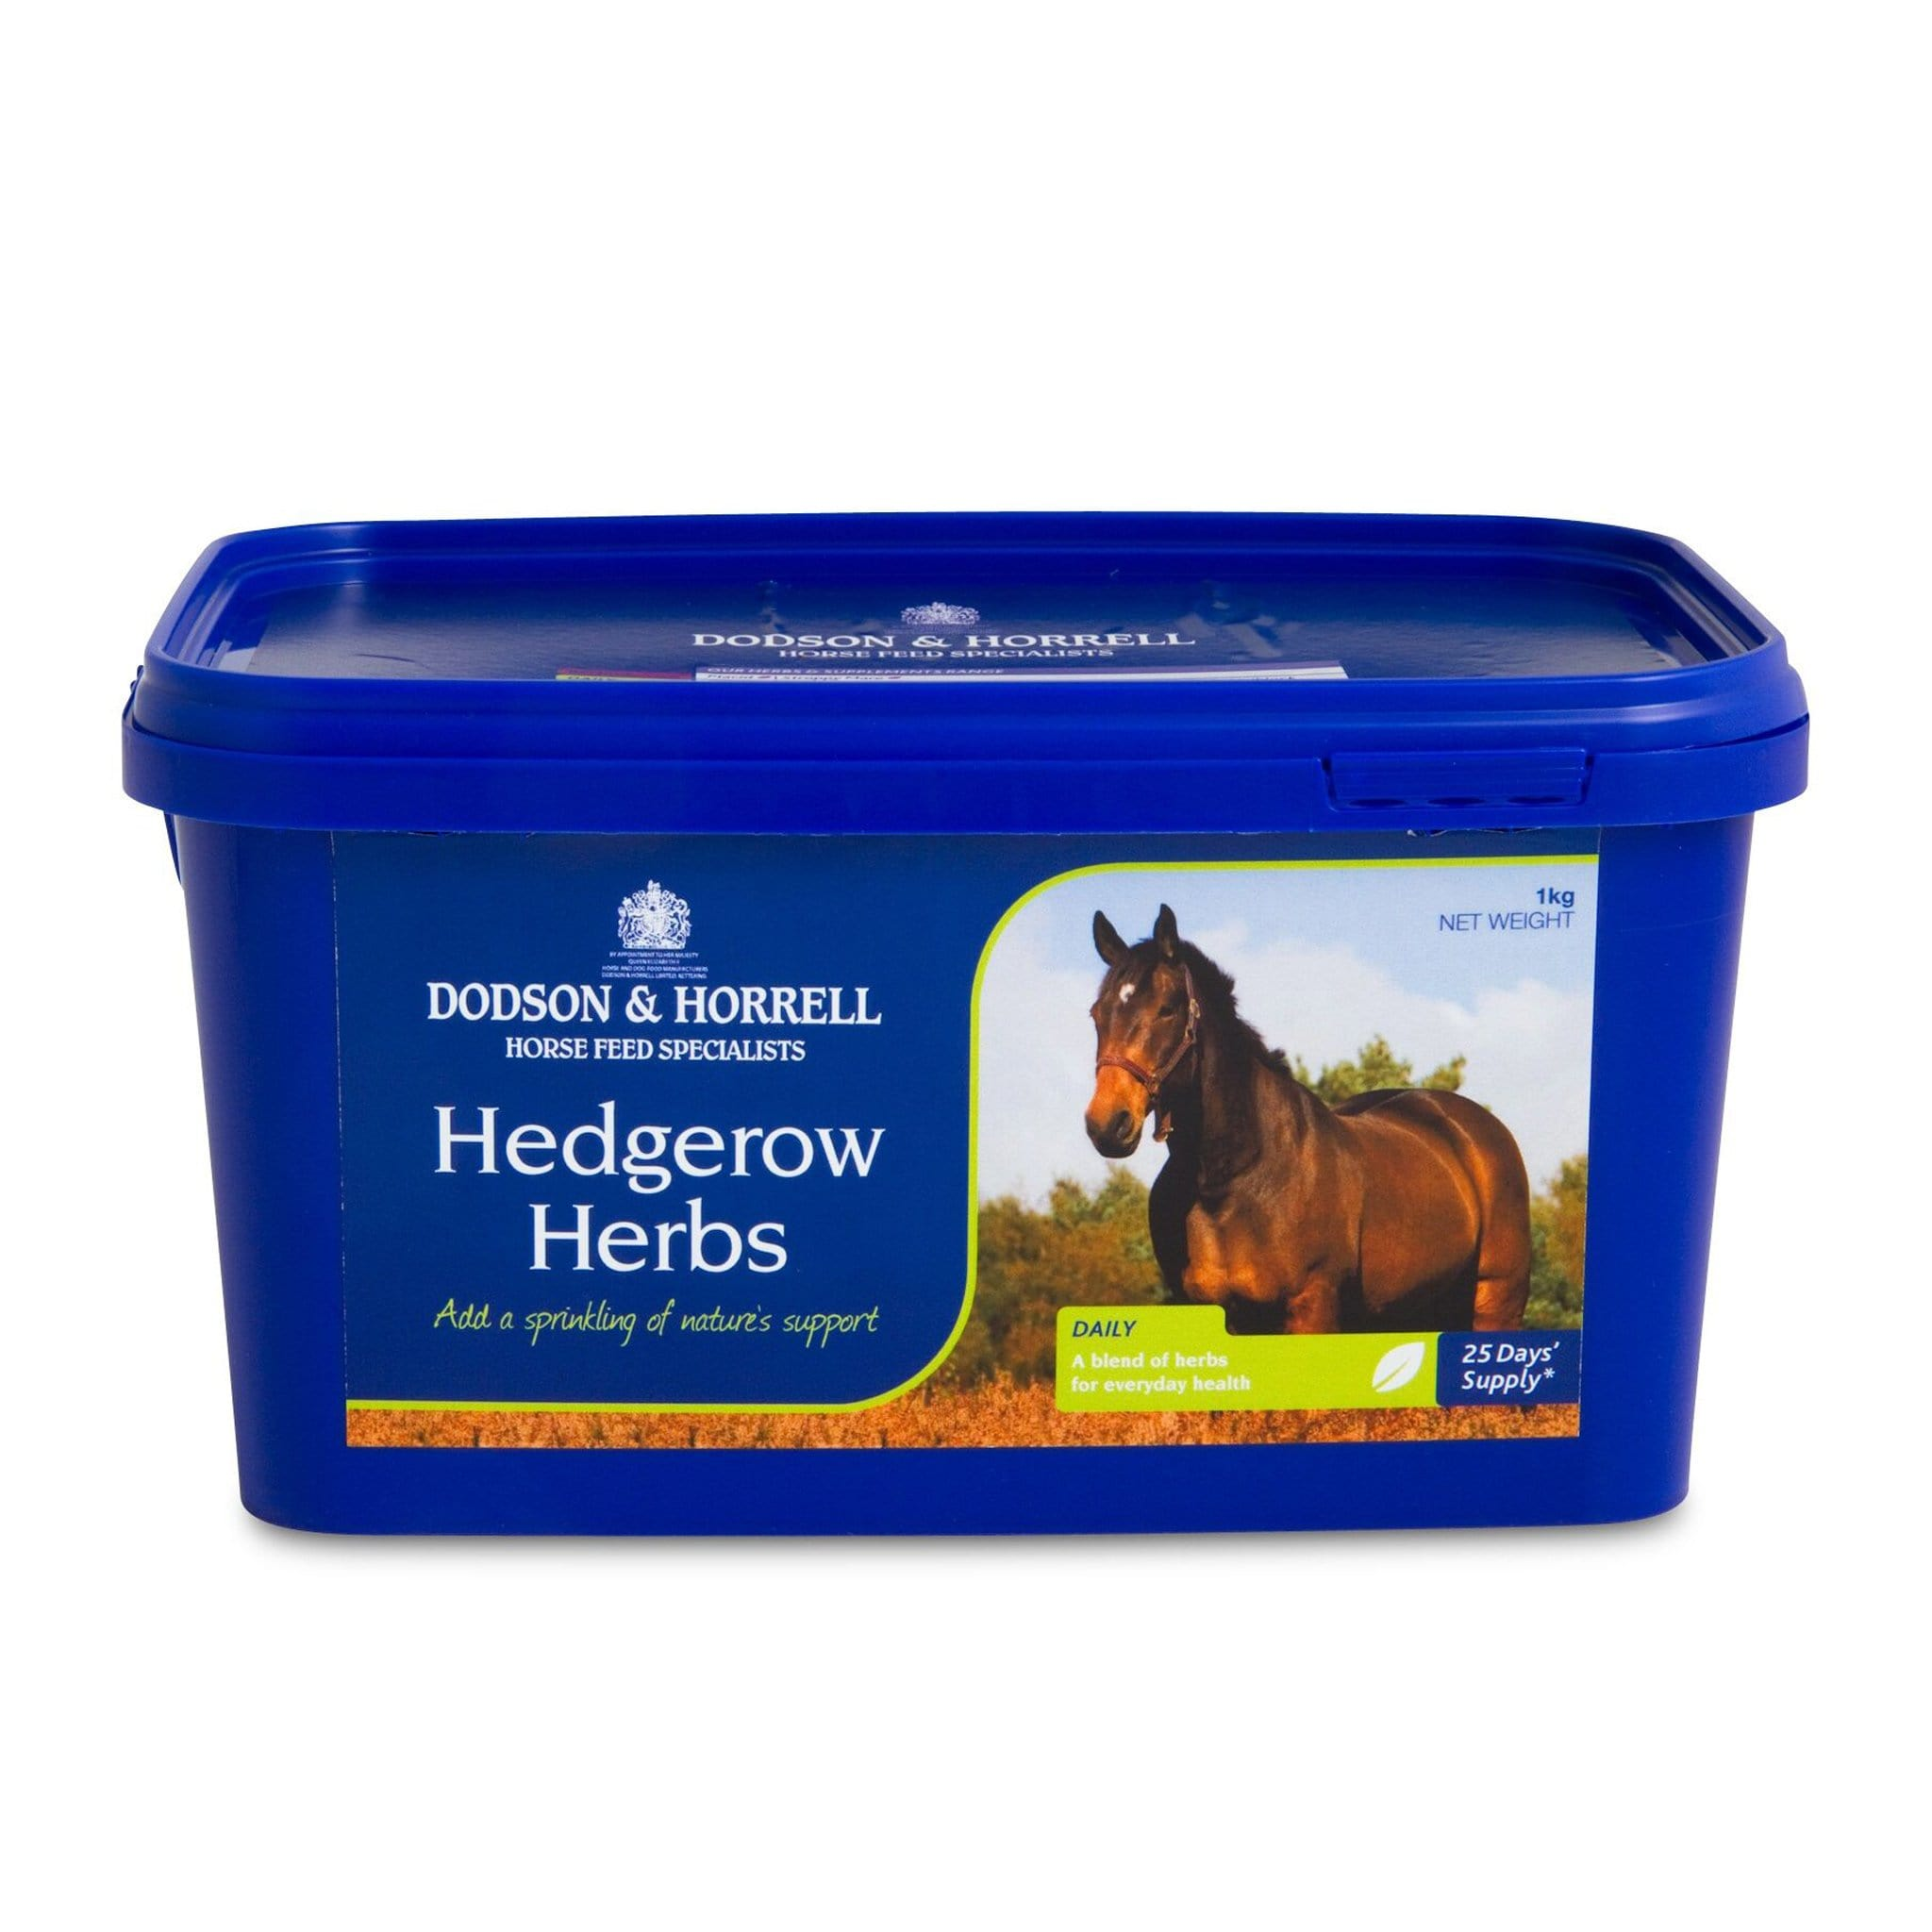 Dodson & Horrell Hedgerow Herbs 1kg DHL0070